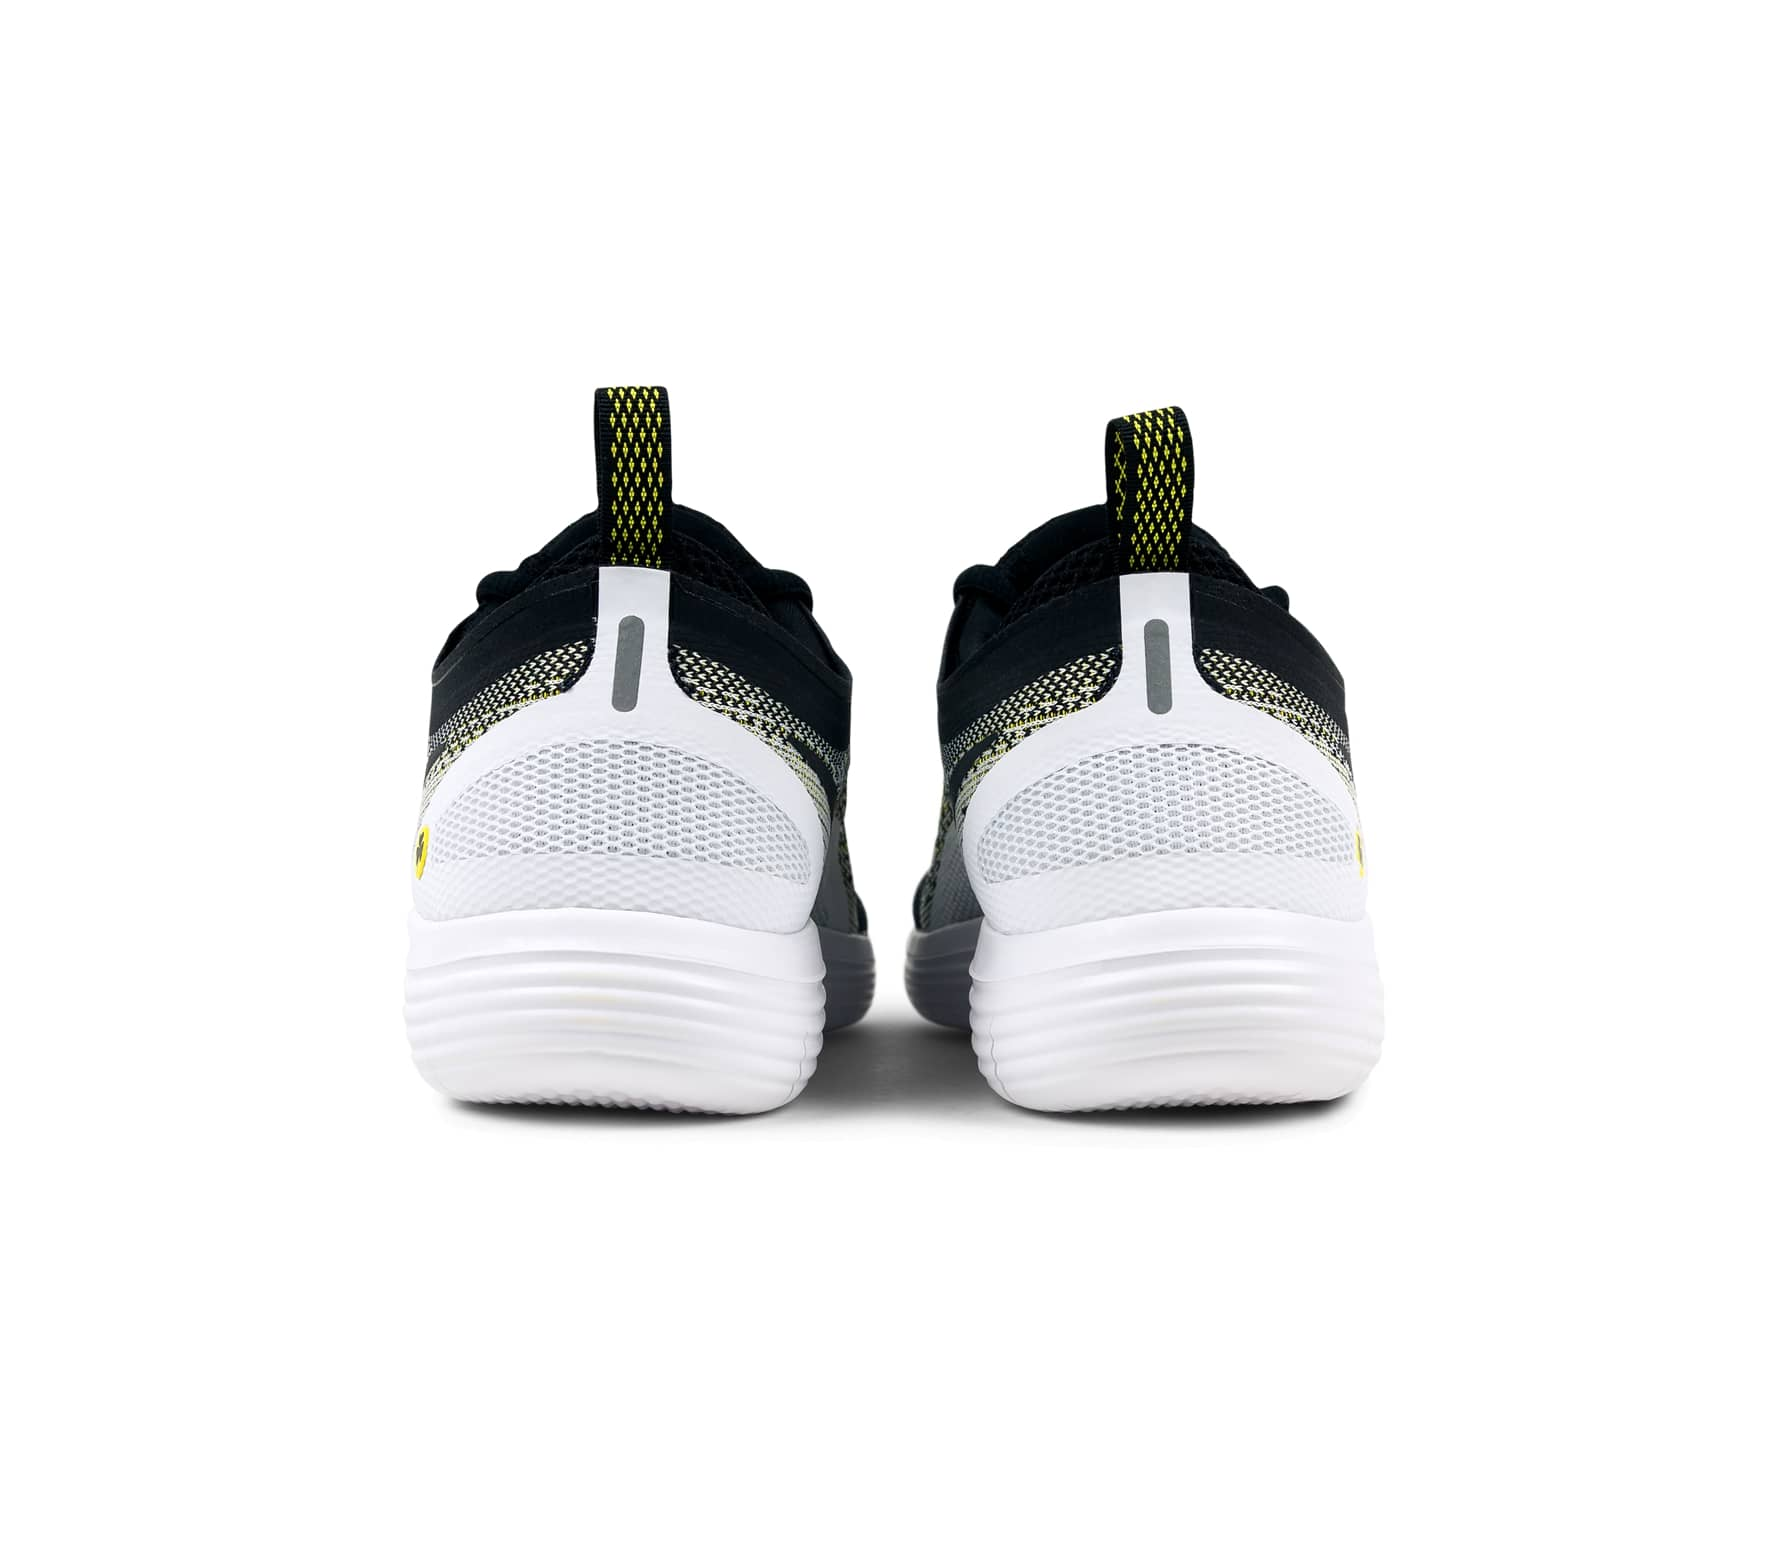 6a4e05b0f55 Nike - Free RN Distance 2 BSTN women s running shoes (black yellow ...